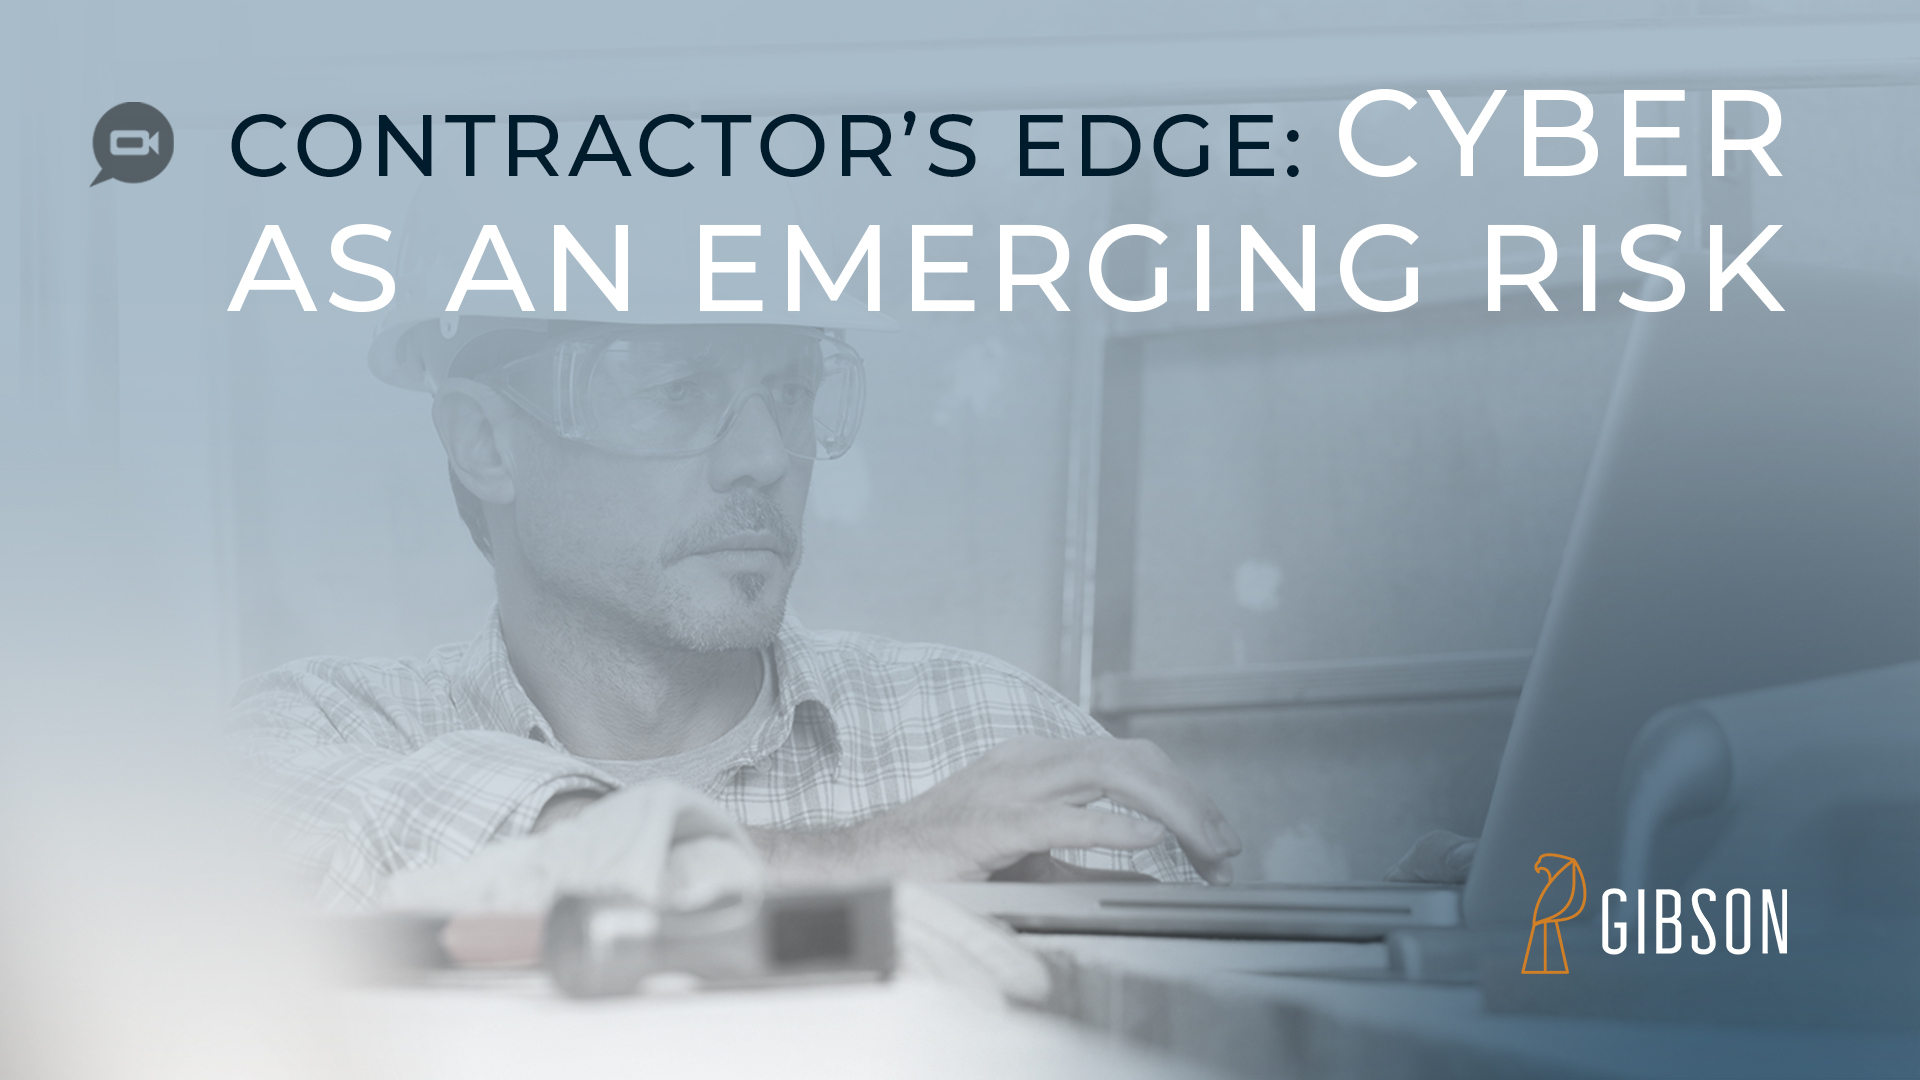 Contractors Edge Cyber as an Emerging Risk